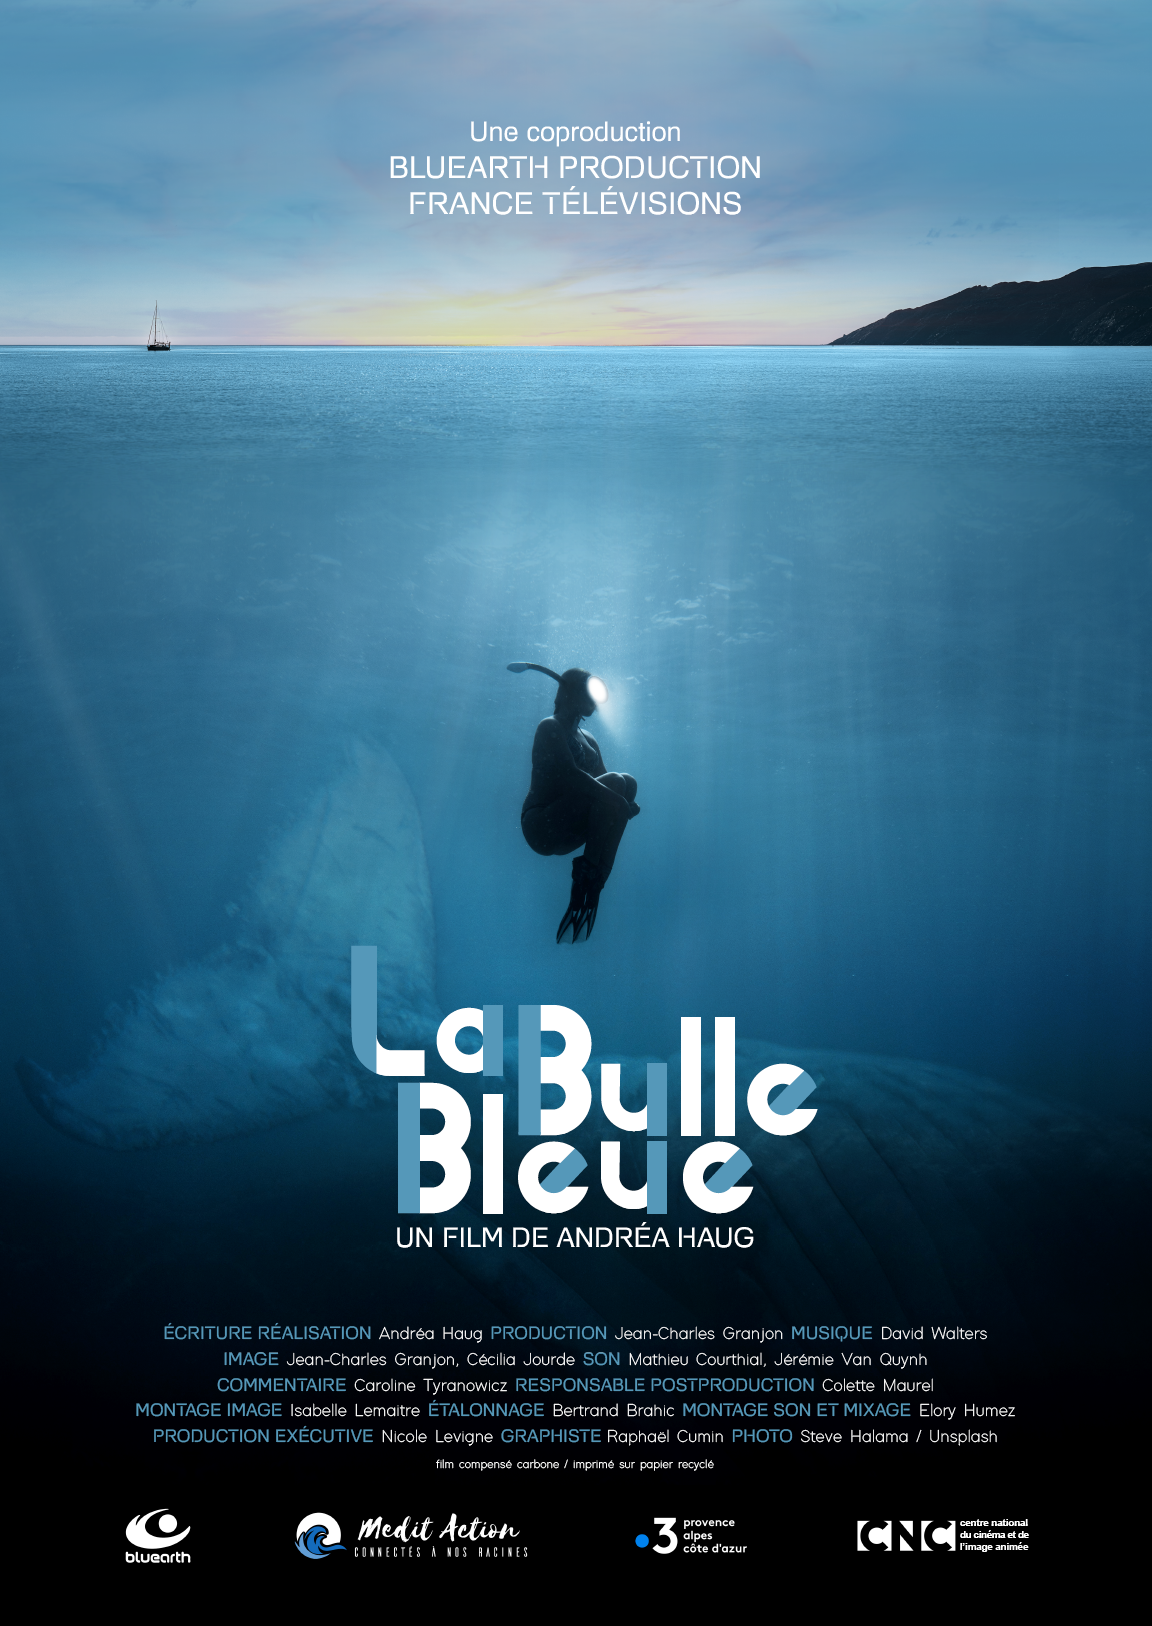 affiche-LaBulleBleue-jan20